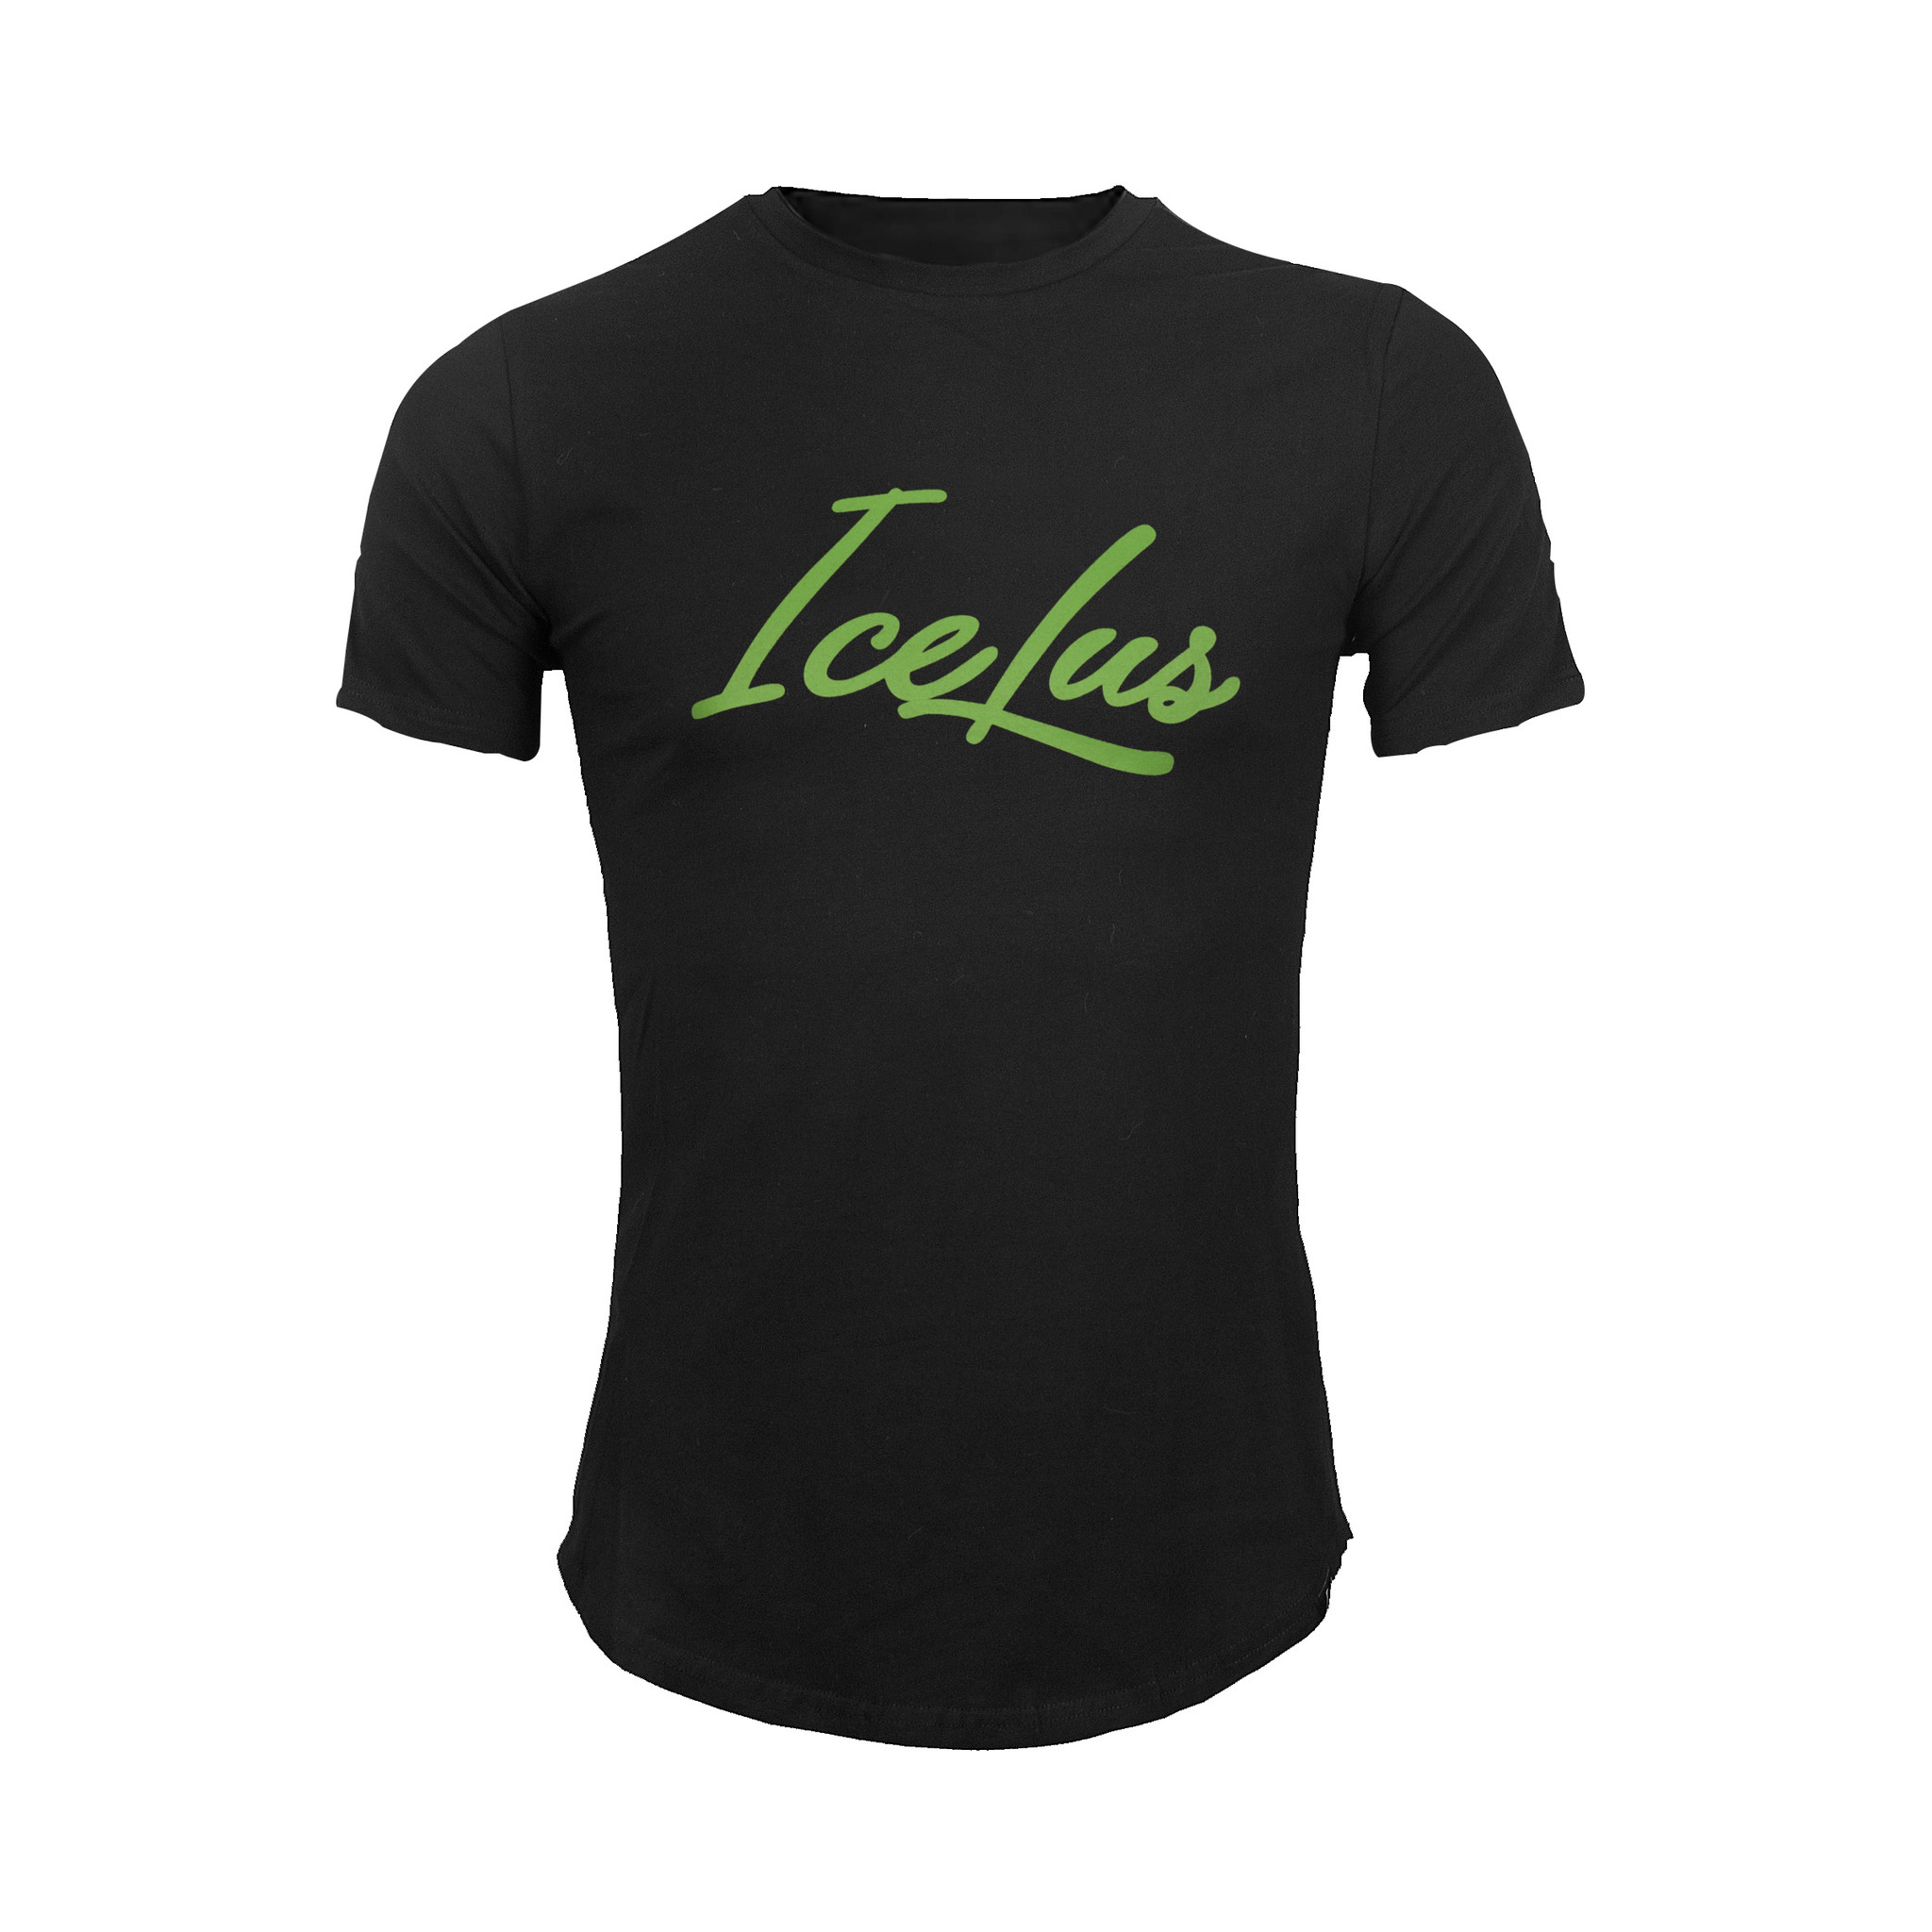 Icelus Clothing Icelus Green on Black